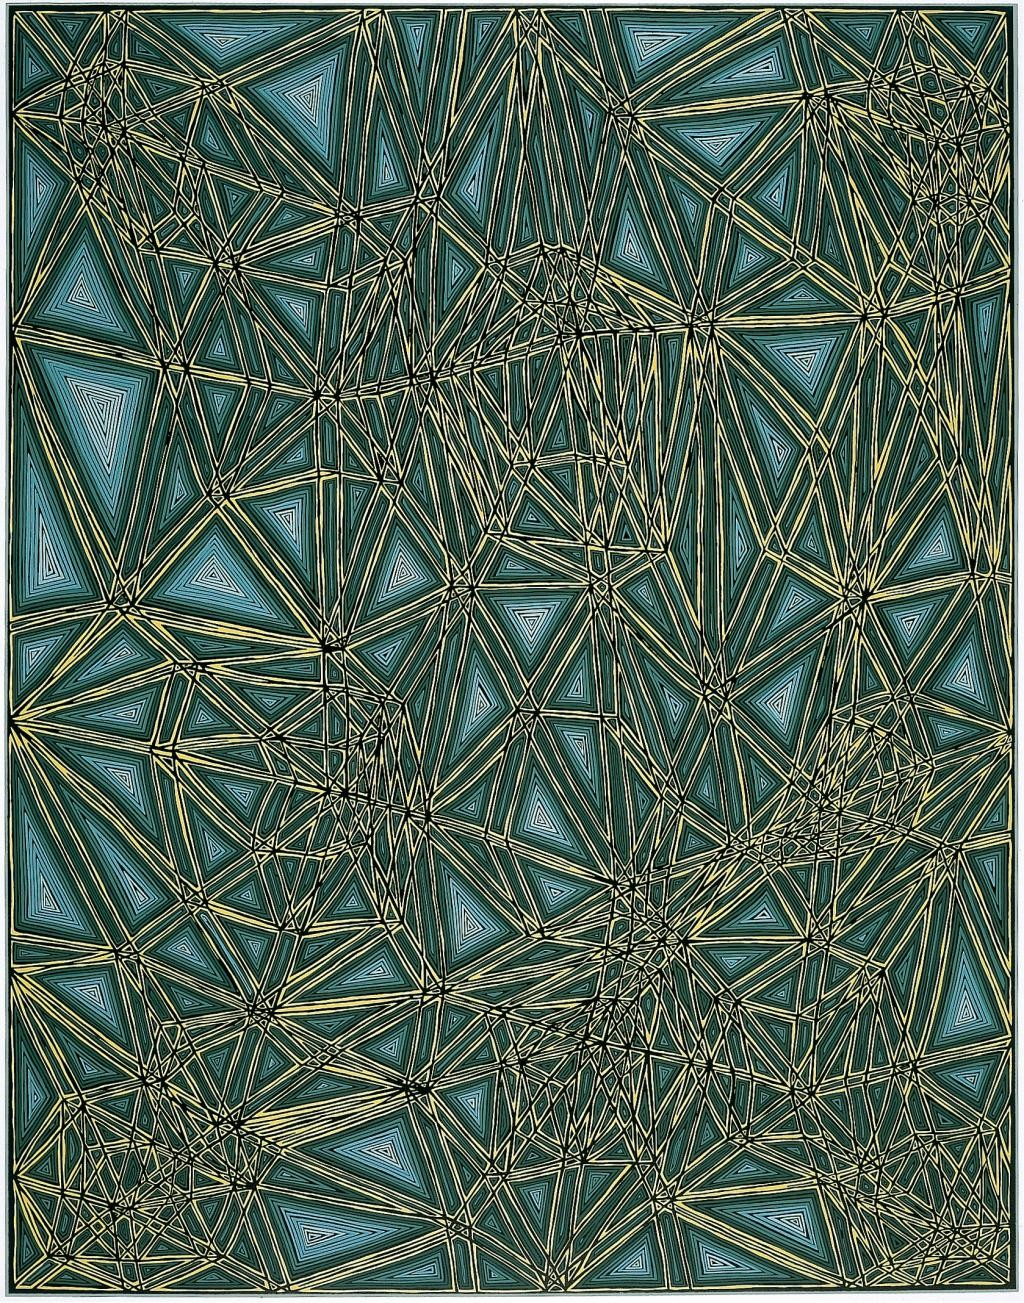 main work - James Siena, Shifted Lattice